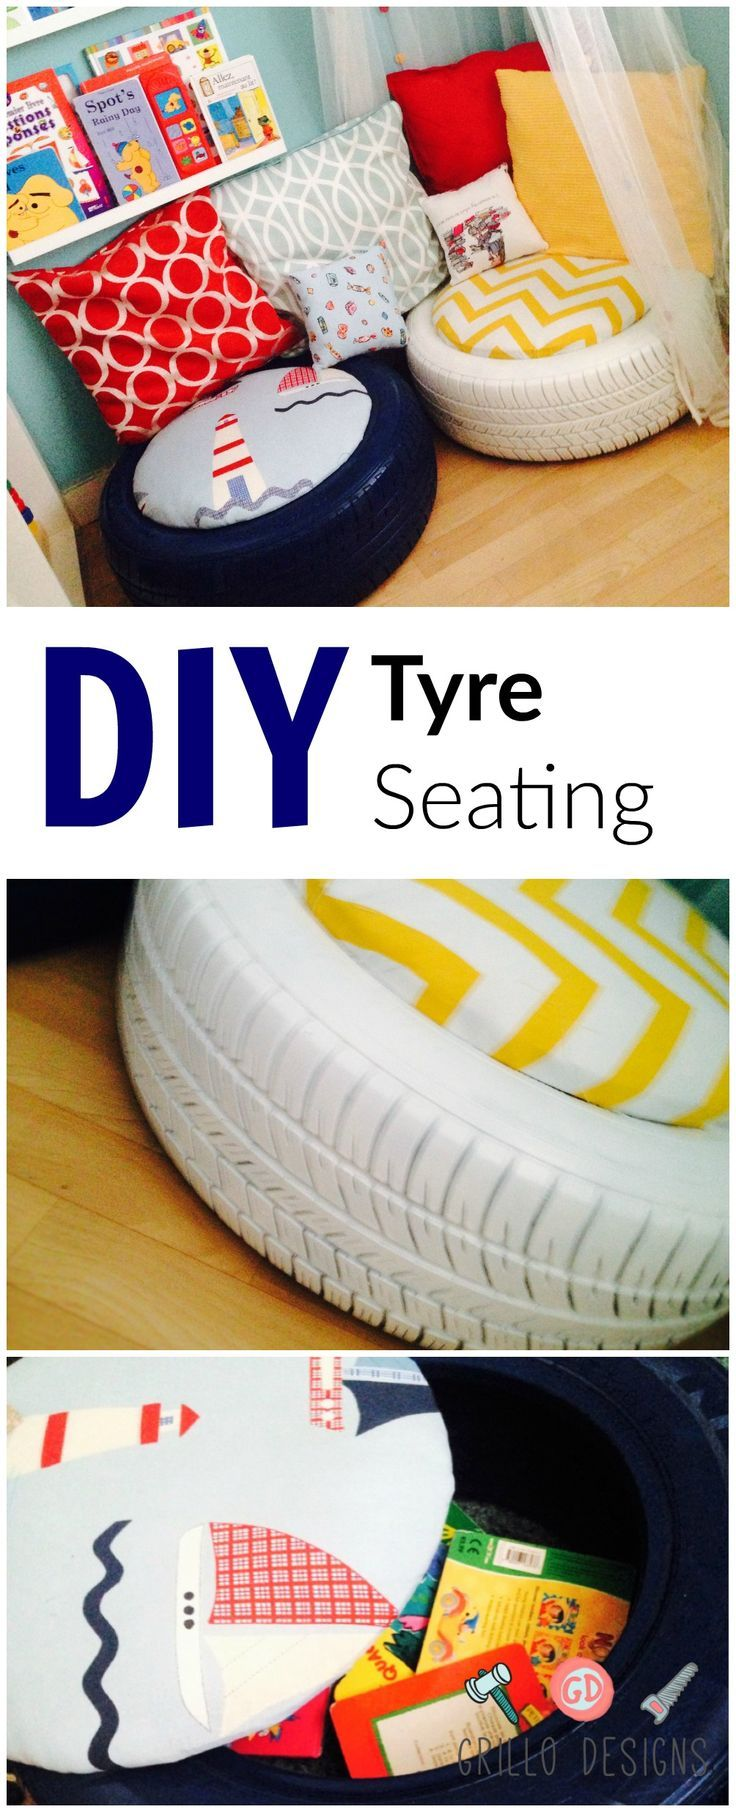 How to's : See how I recycled plain old tyres into a kids seating area for my son